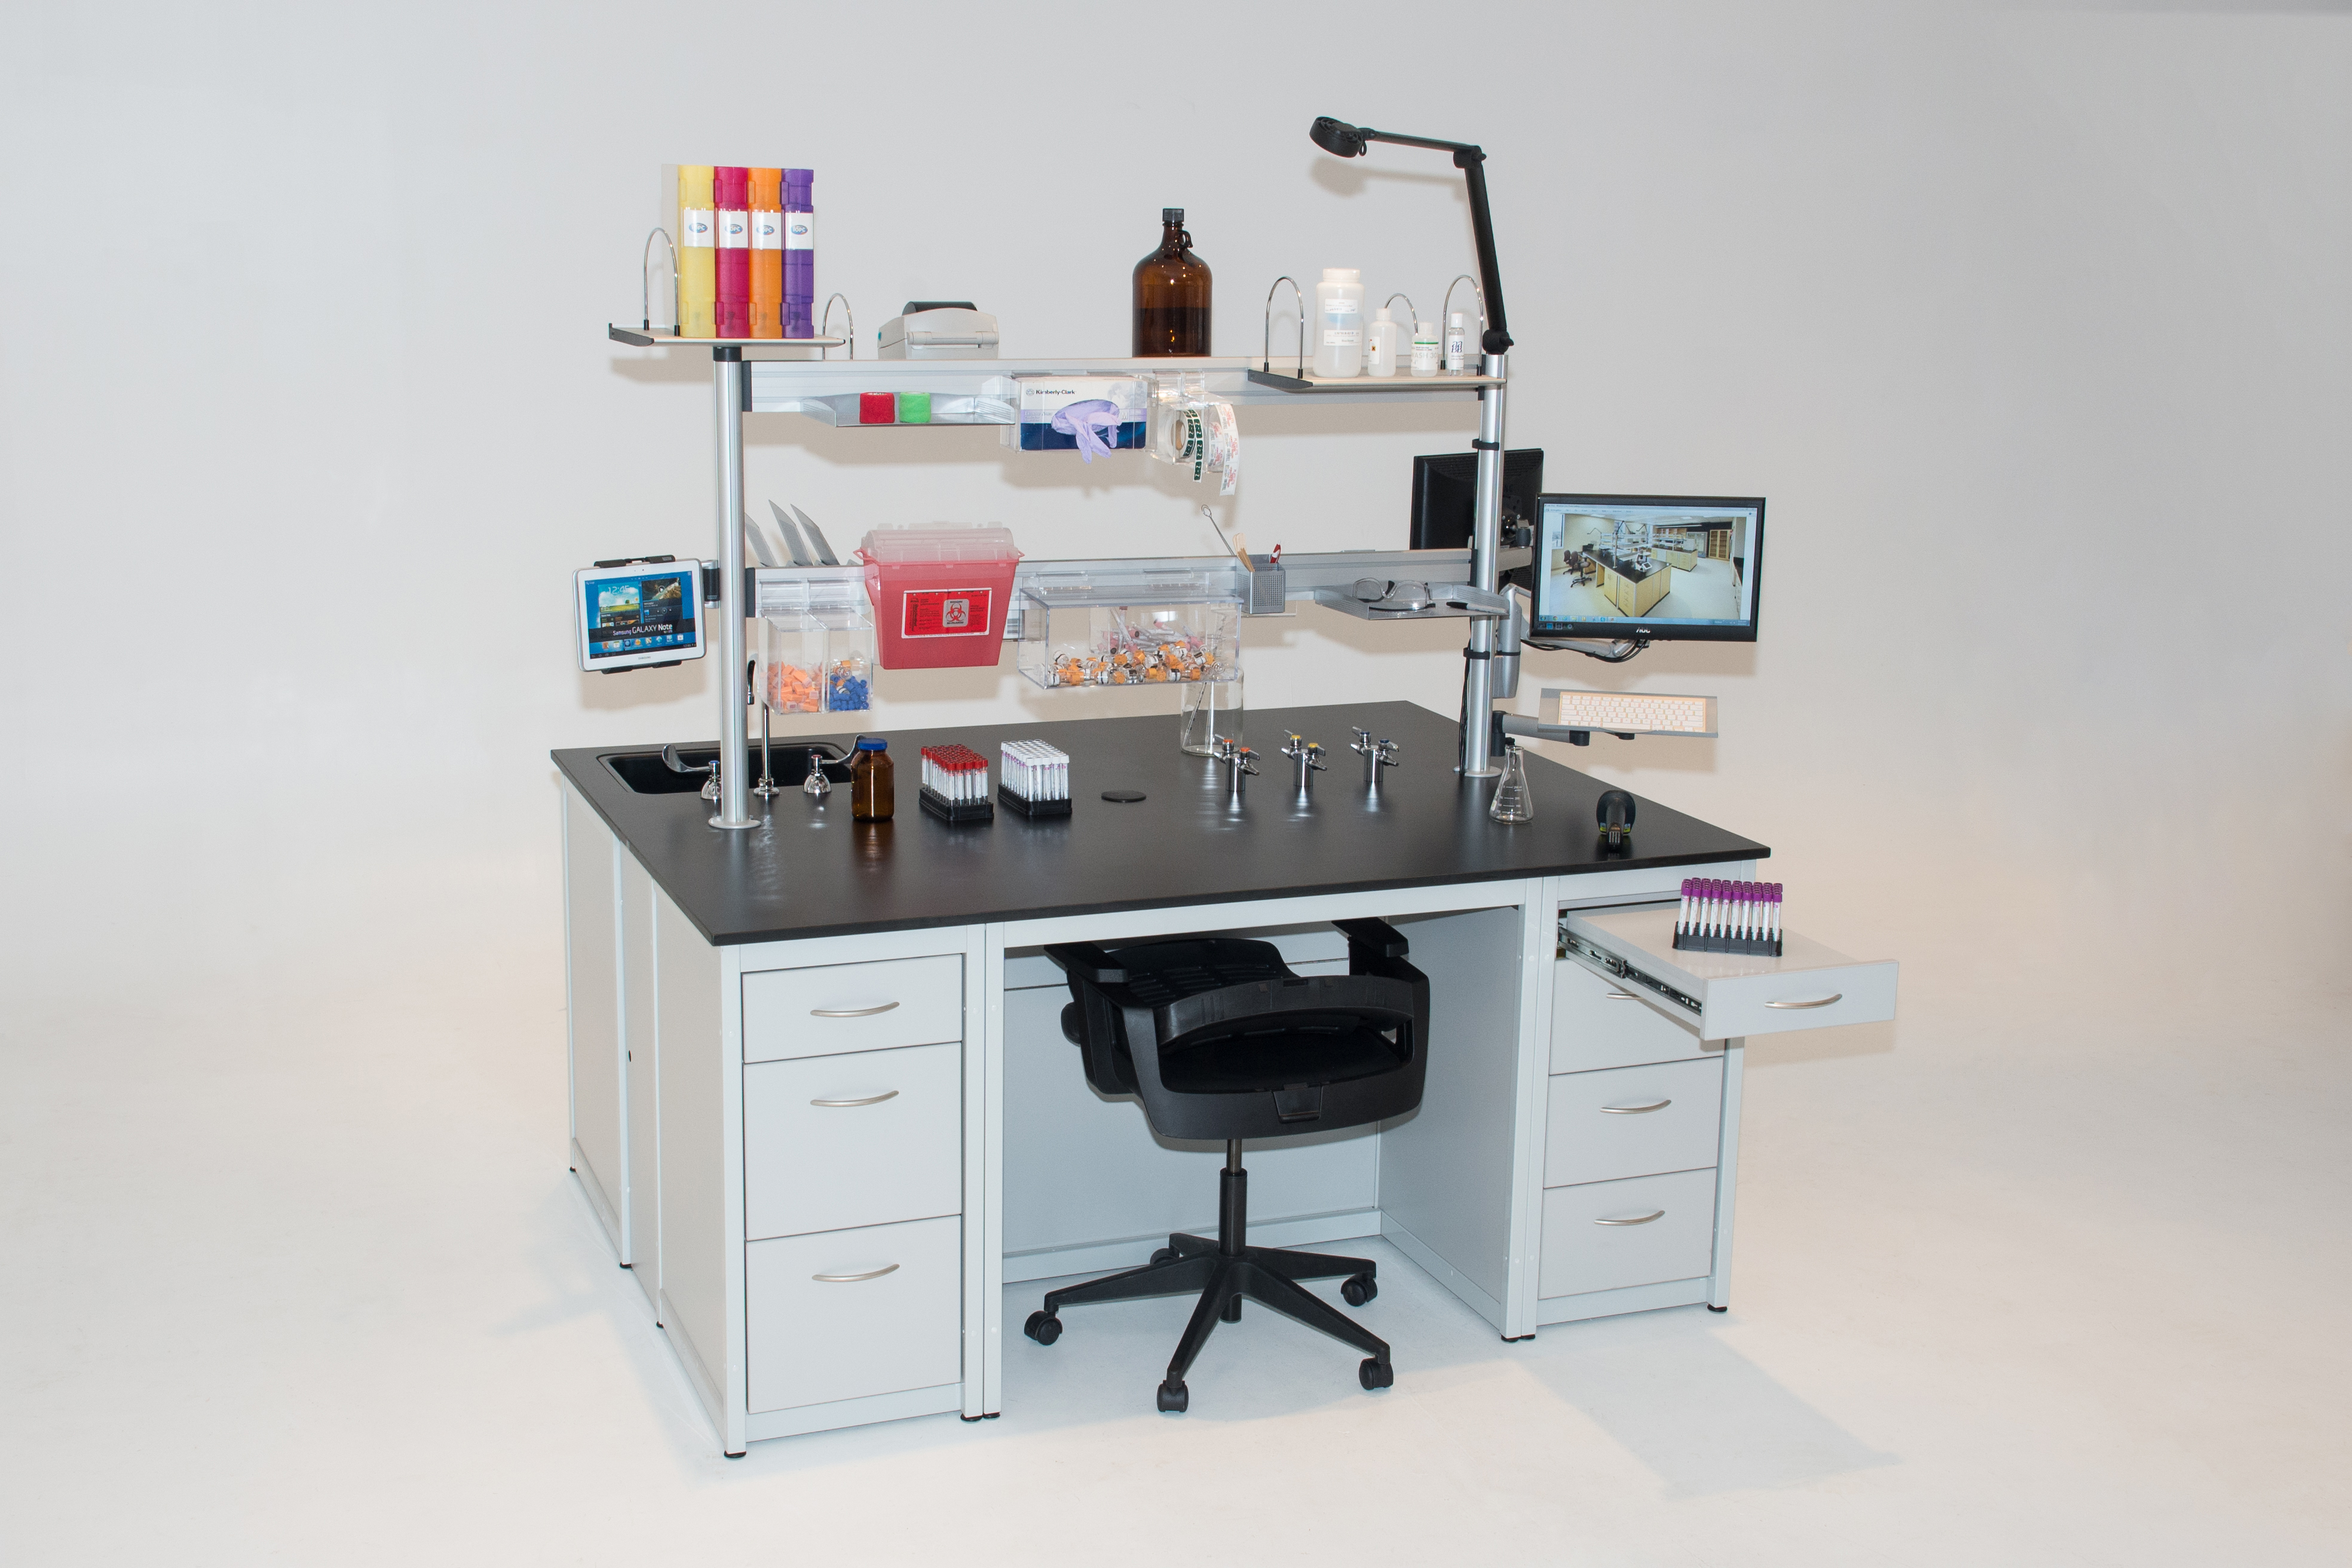 Lab workbench with slat railing